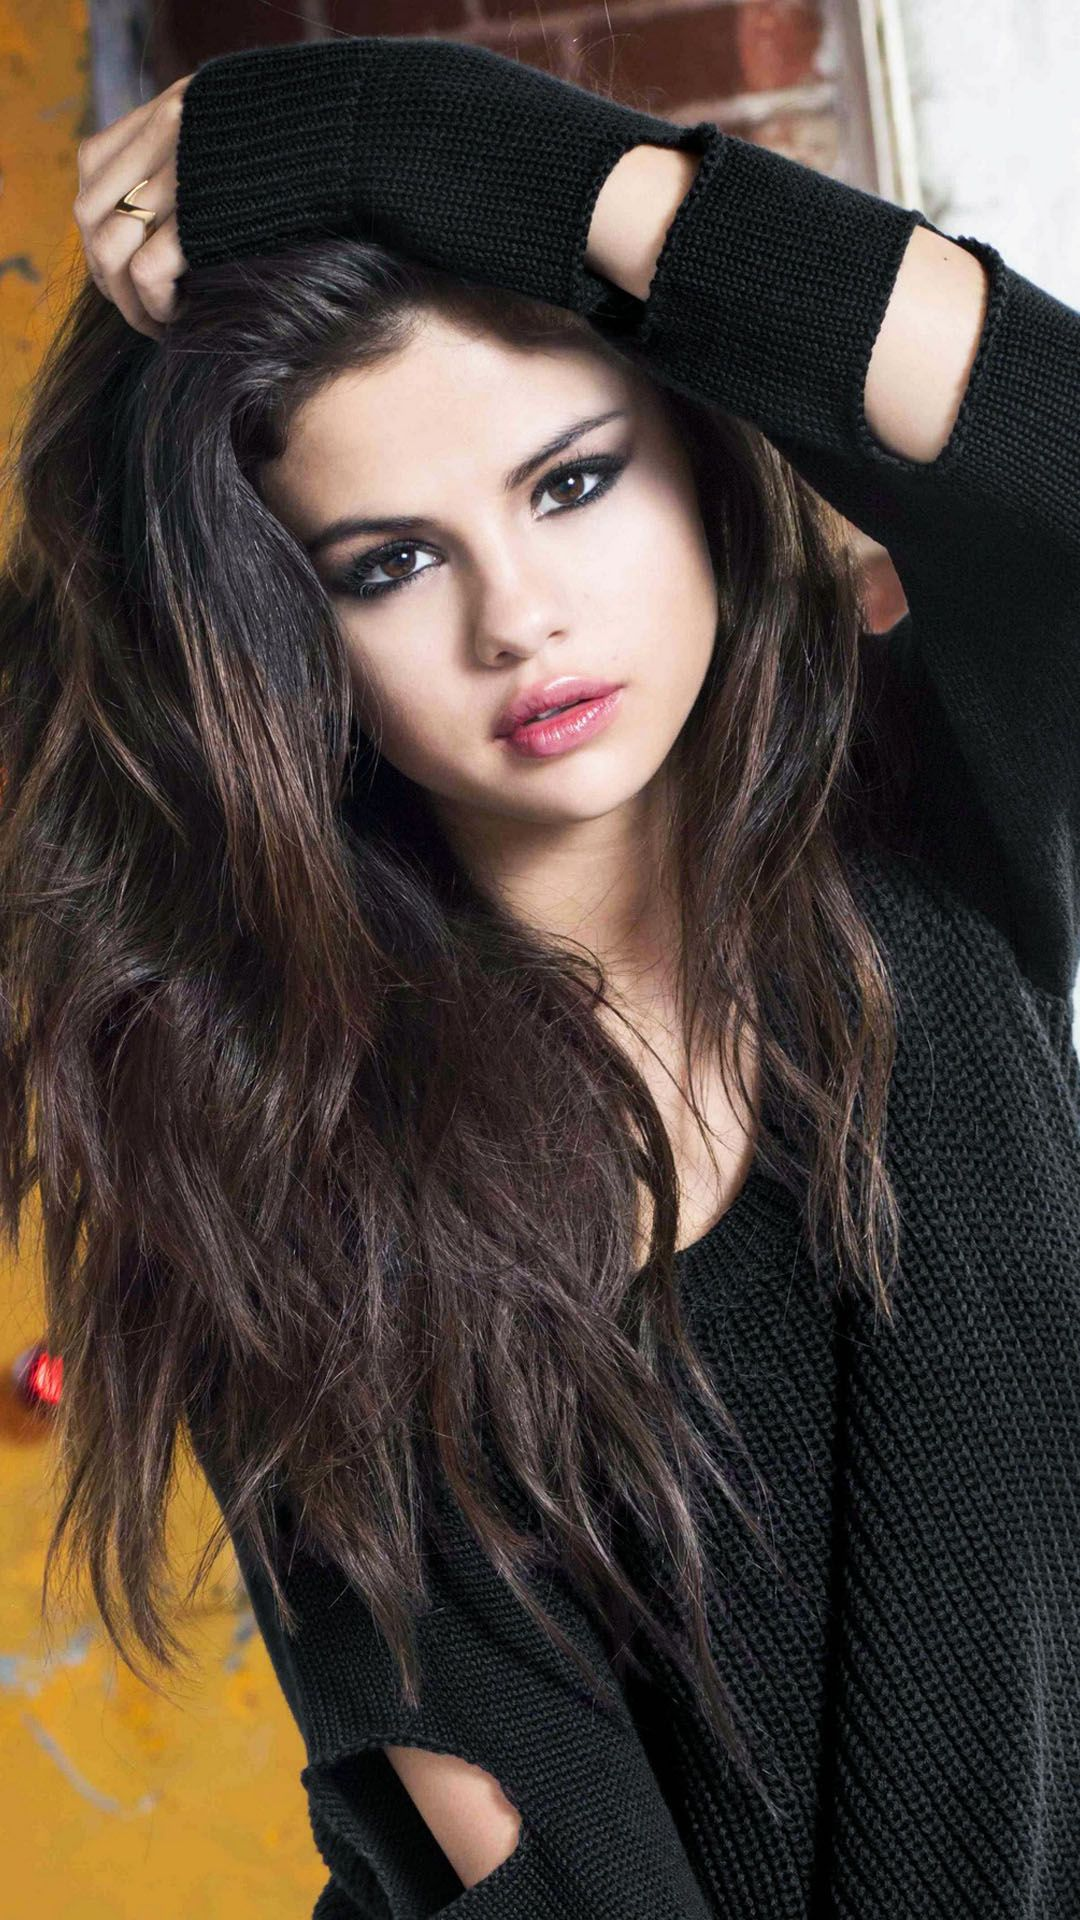 Best Selena gomez wallpaper ideas on Pinterest Selena